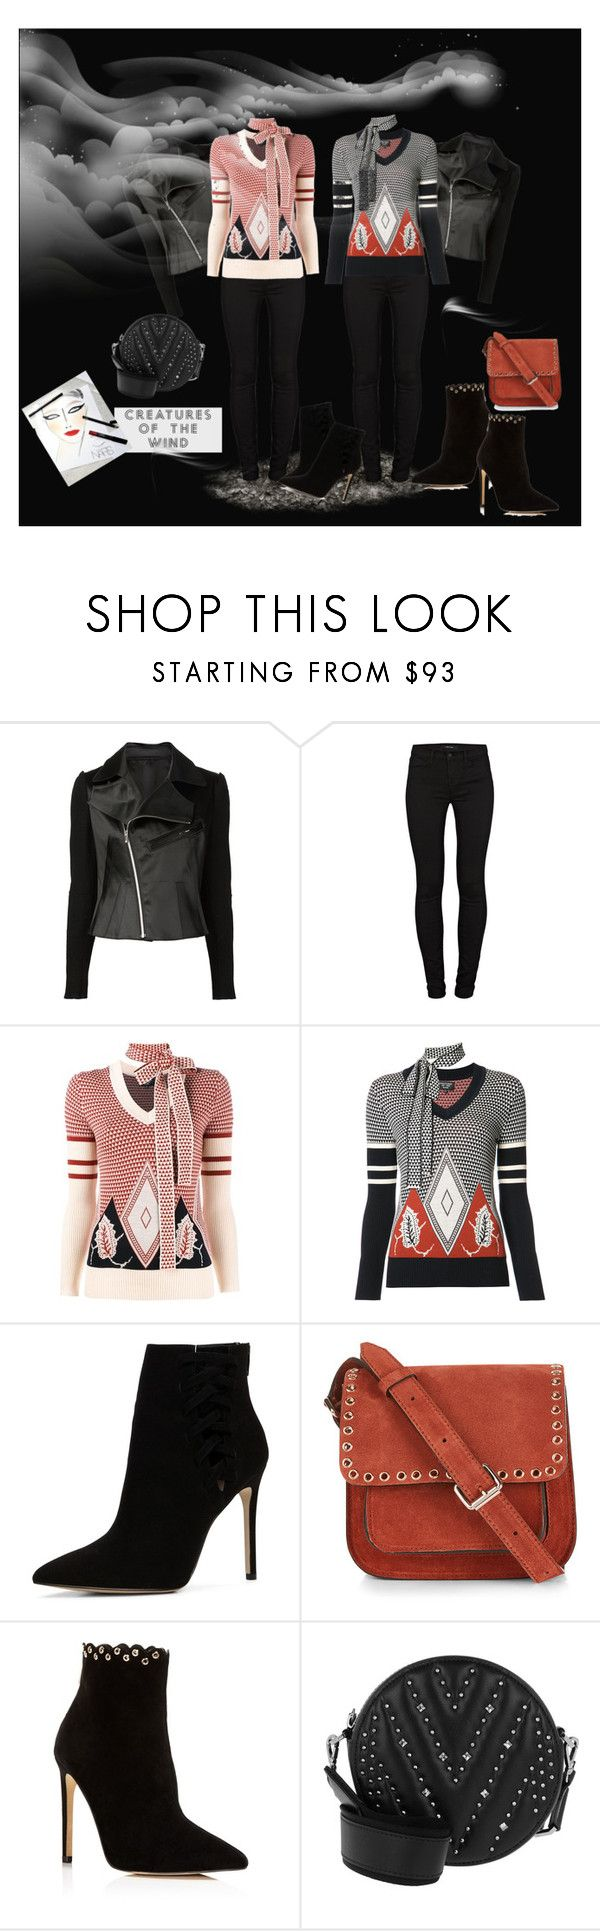 """Double-Pack"" by catsanddogs-563 ❤ liked on Polyvore featuring Creatures of the Wind, J Brand, ALDO, Étoile Isabel Marant, Raye, MCM, jacket, jumper and creaturesofthewind"